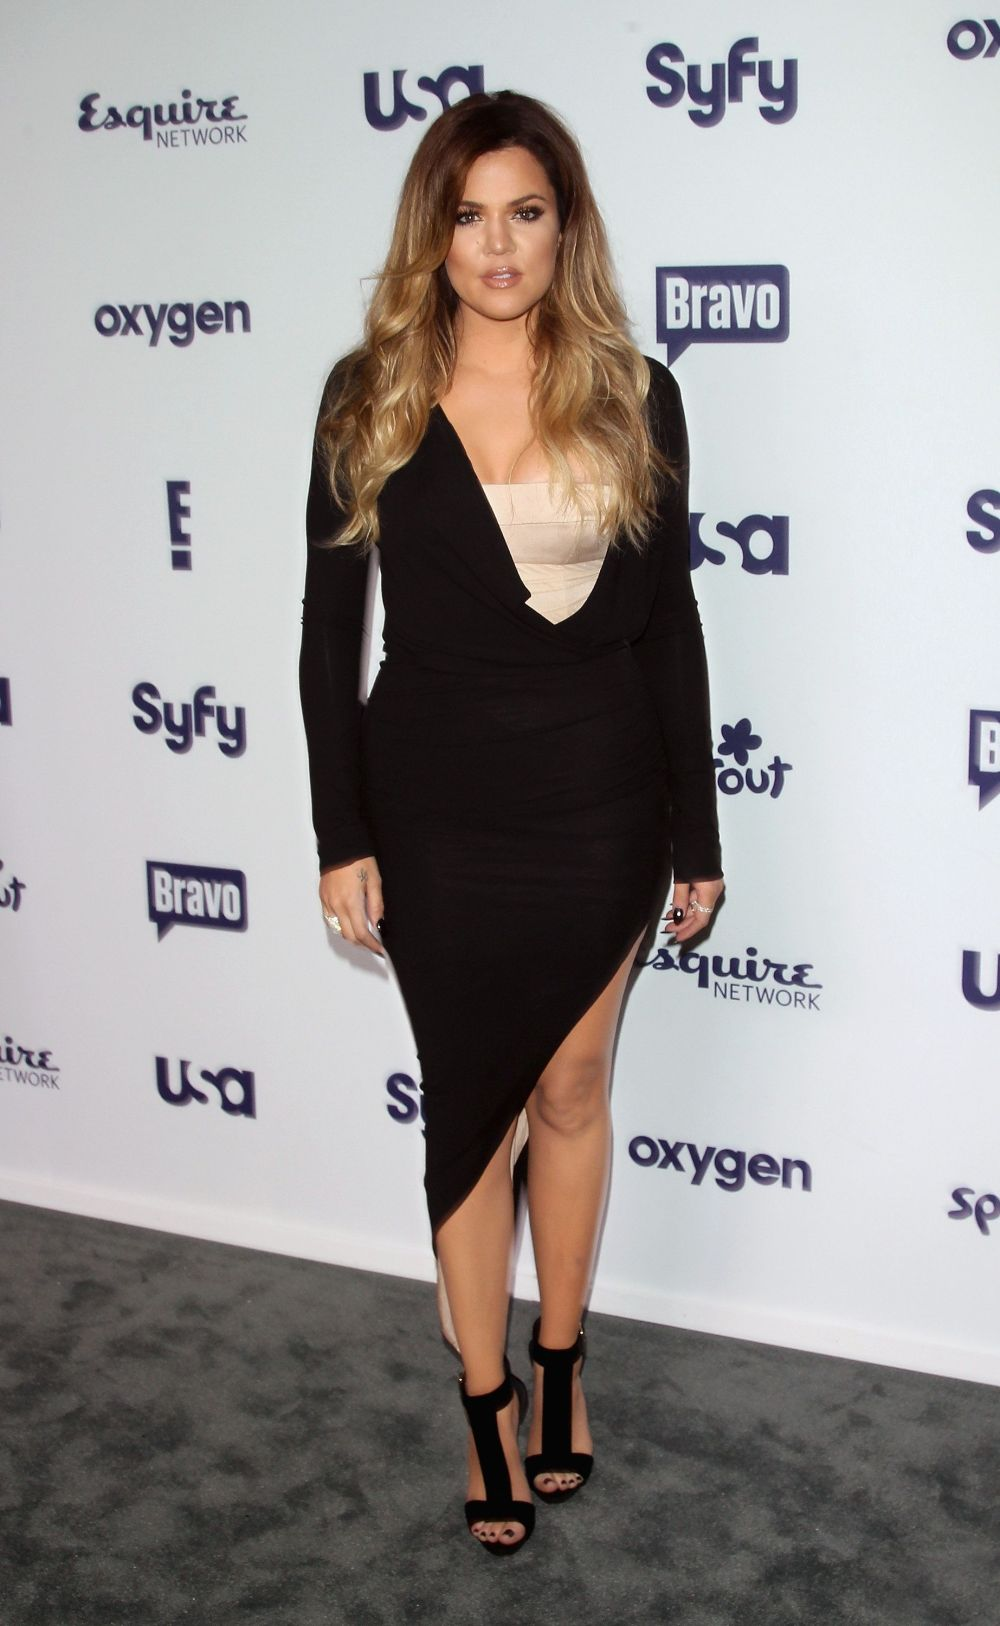 Atthe 2014 NBCUniversal Cable Entertainment Upfronts at the Jacob K. Javits Convention Center in New York City.